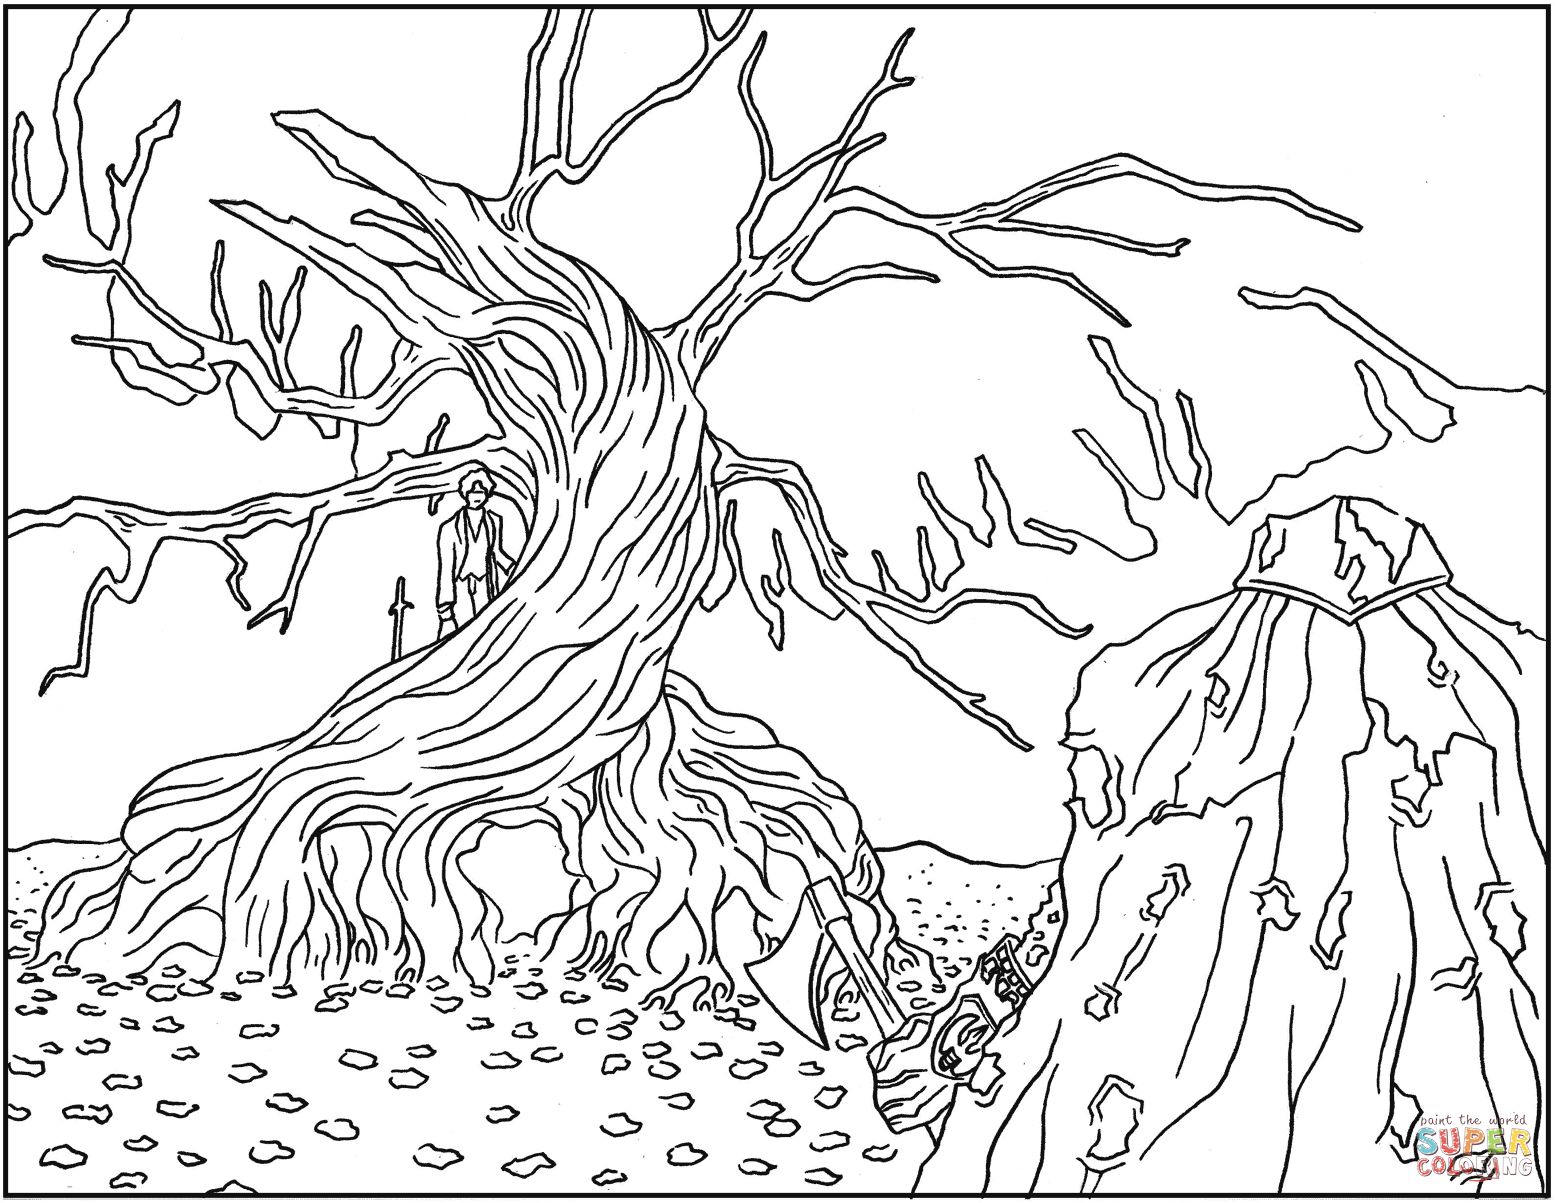 The Nightmare Before Christmas Coloring Pages - Coloring Home